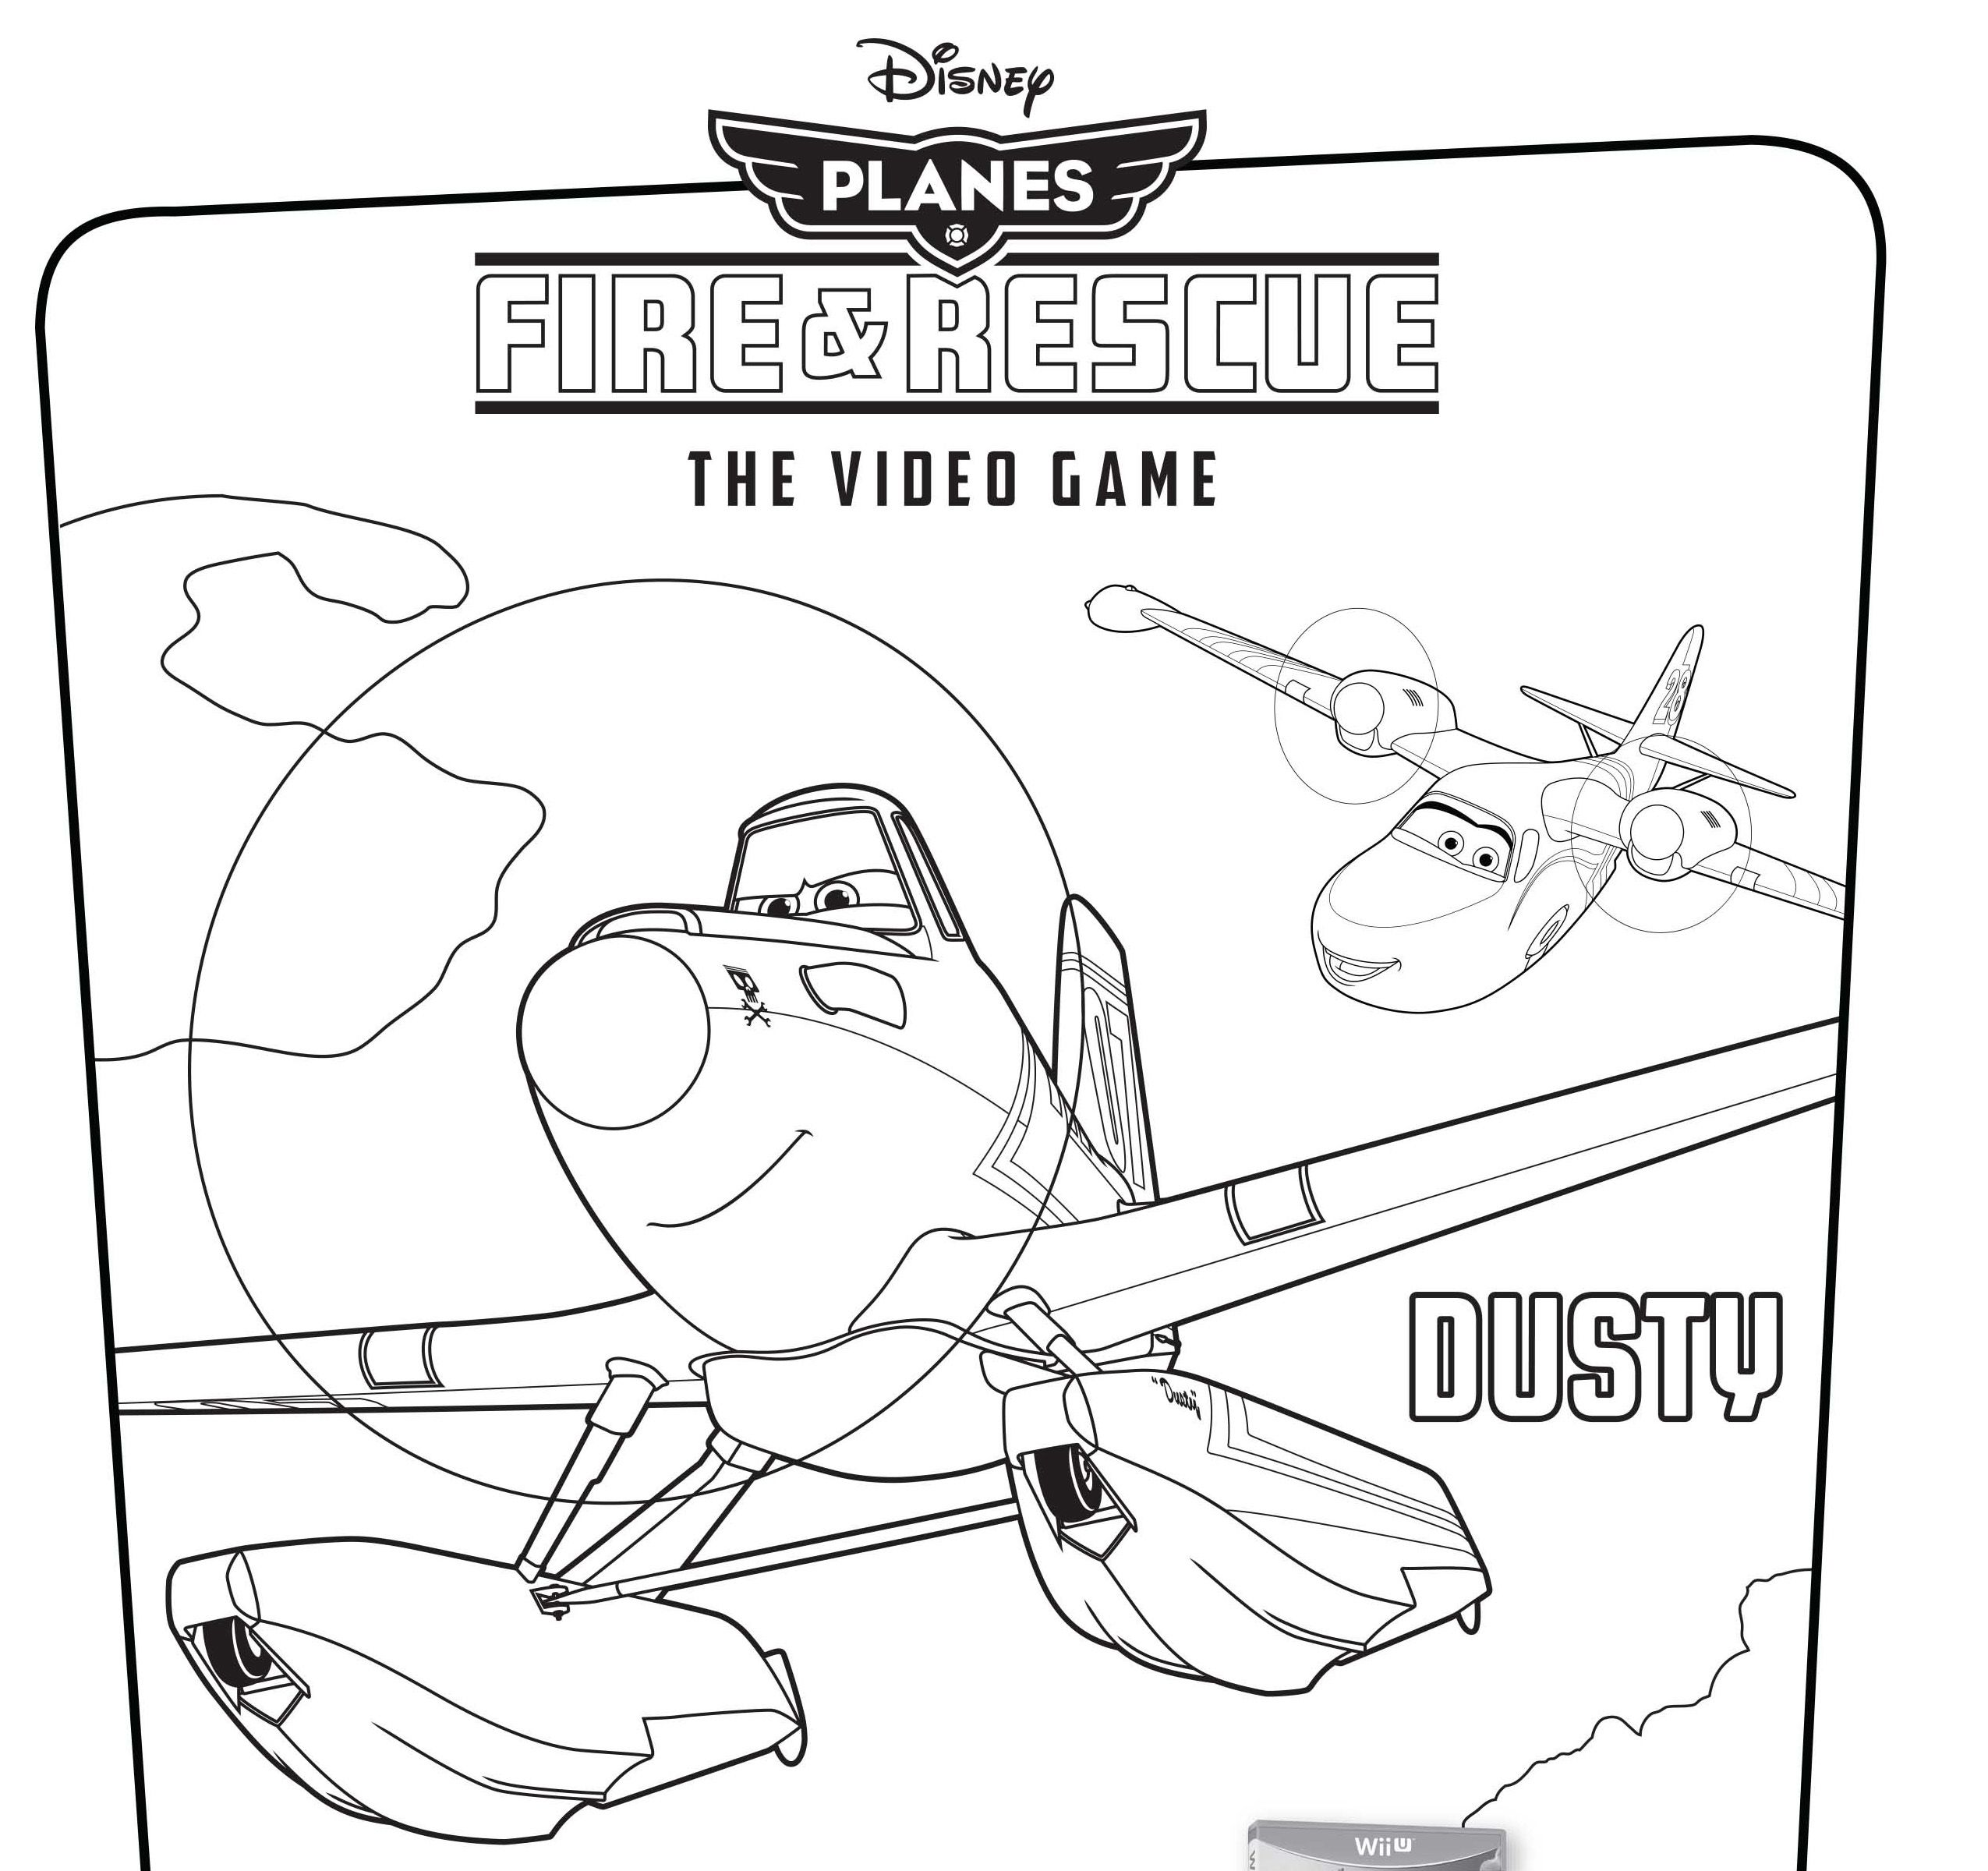 Disney S Planes Fire Rescue Video Game Coloring Pages Disney Family Disney Coloring Pages Disney Princess Coloring Pages Disney Planes